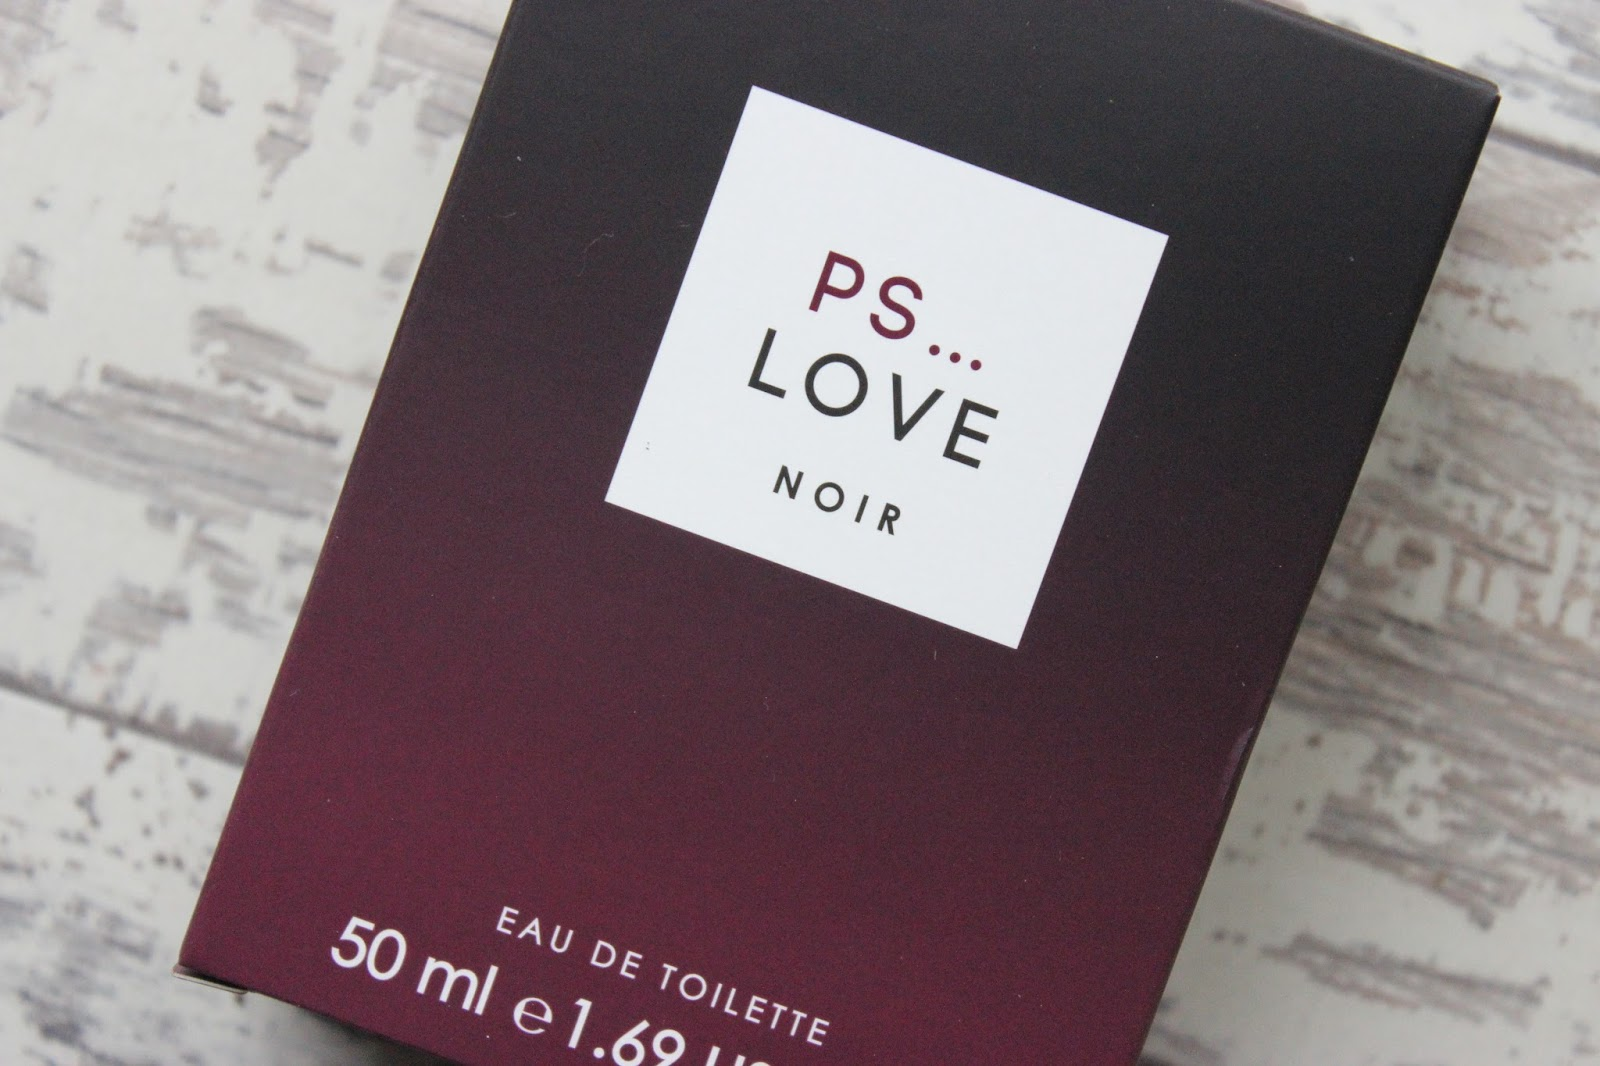 Primark PS Love Noir Lancome La Vie Est Belle Dupe UK Beauty Blogger Review Affordable Fragances